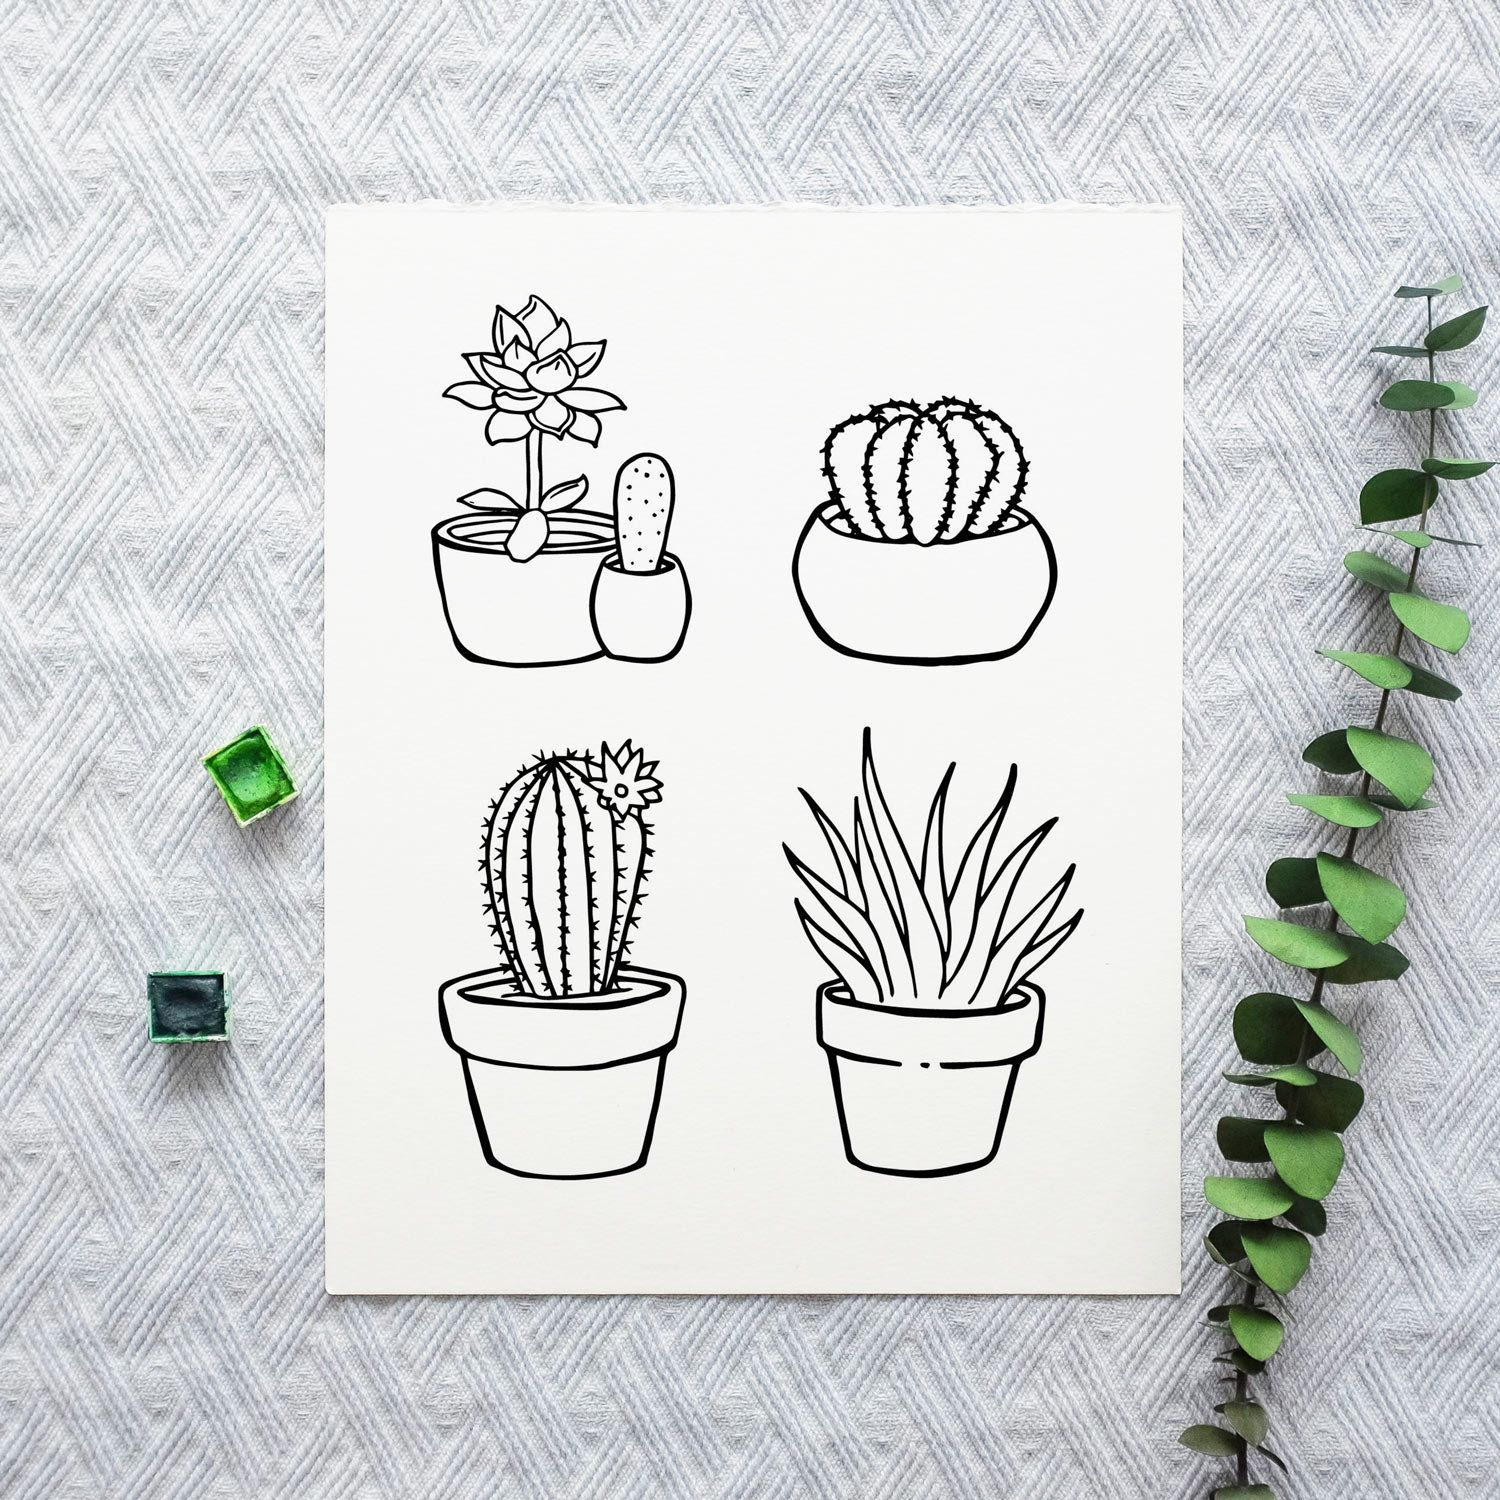 Succulents Coloring Pages Cactus Coloring Pages Part 2 Set Easy Drawings Coloring Pages Succulents Drawing